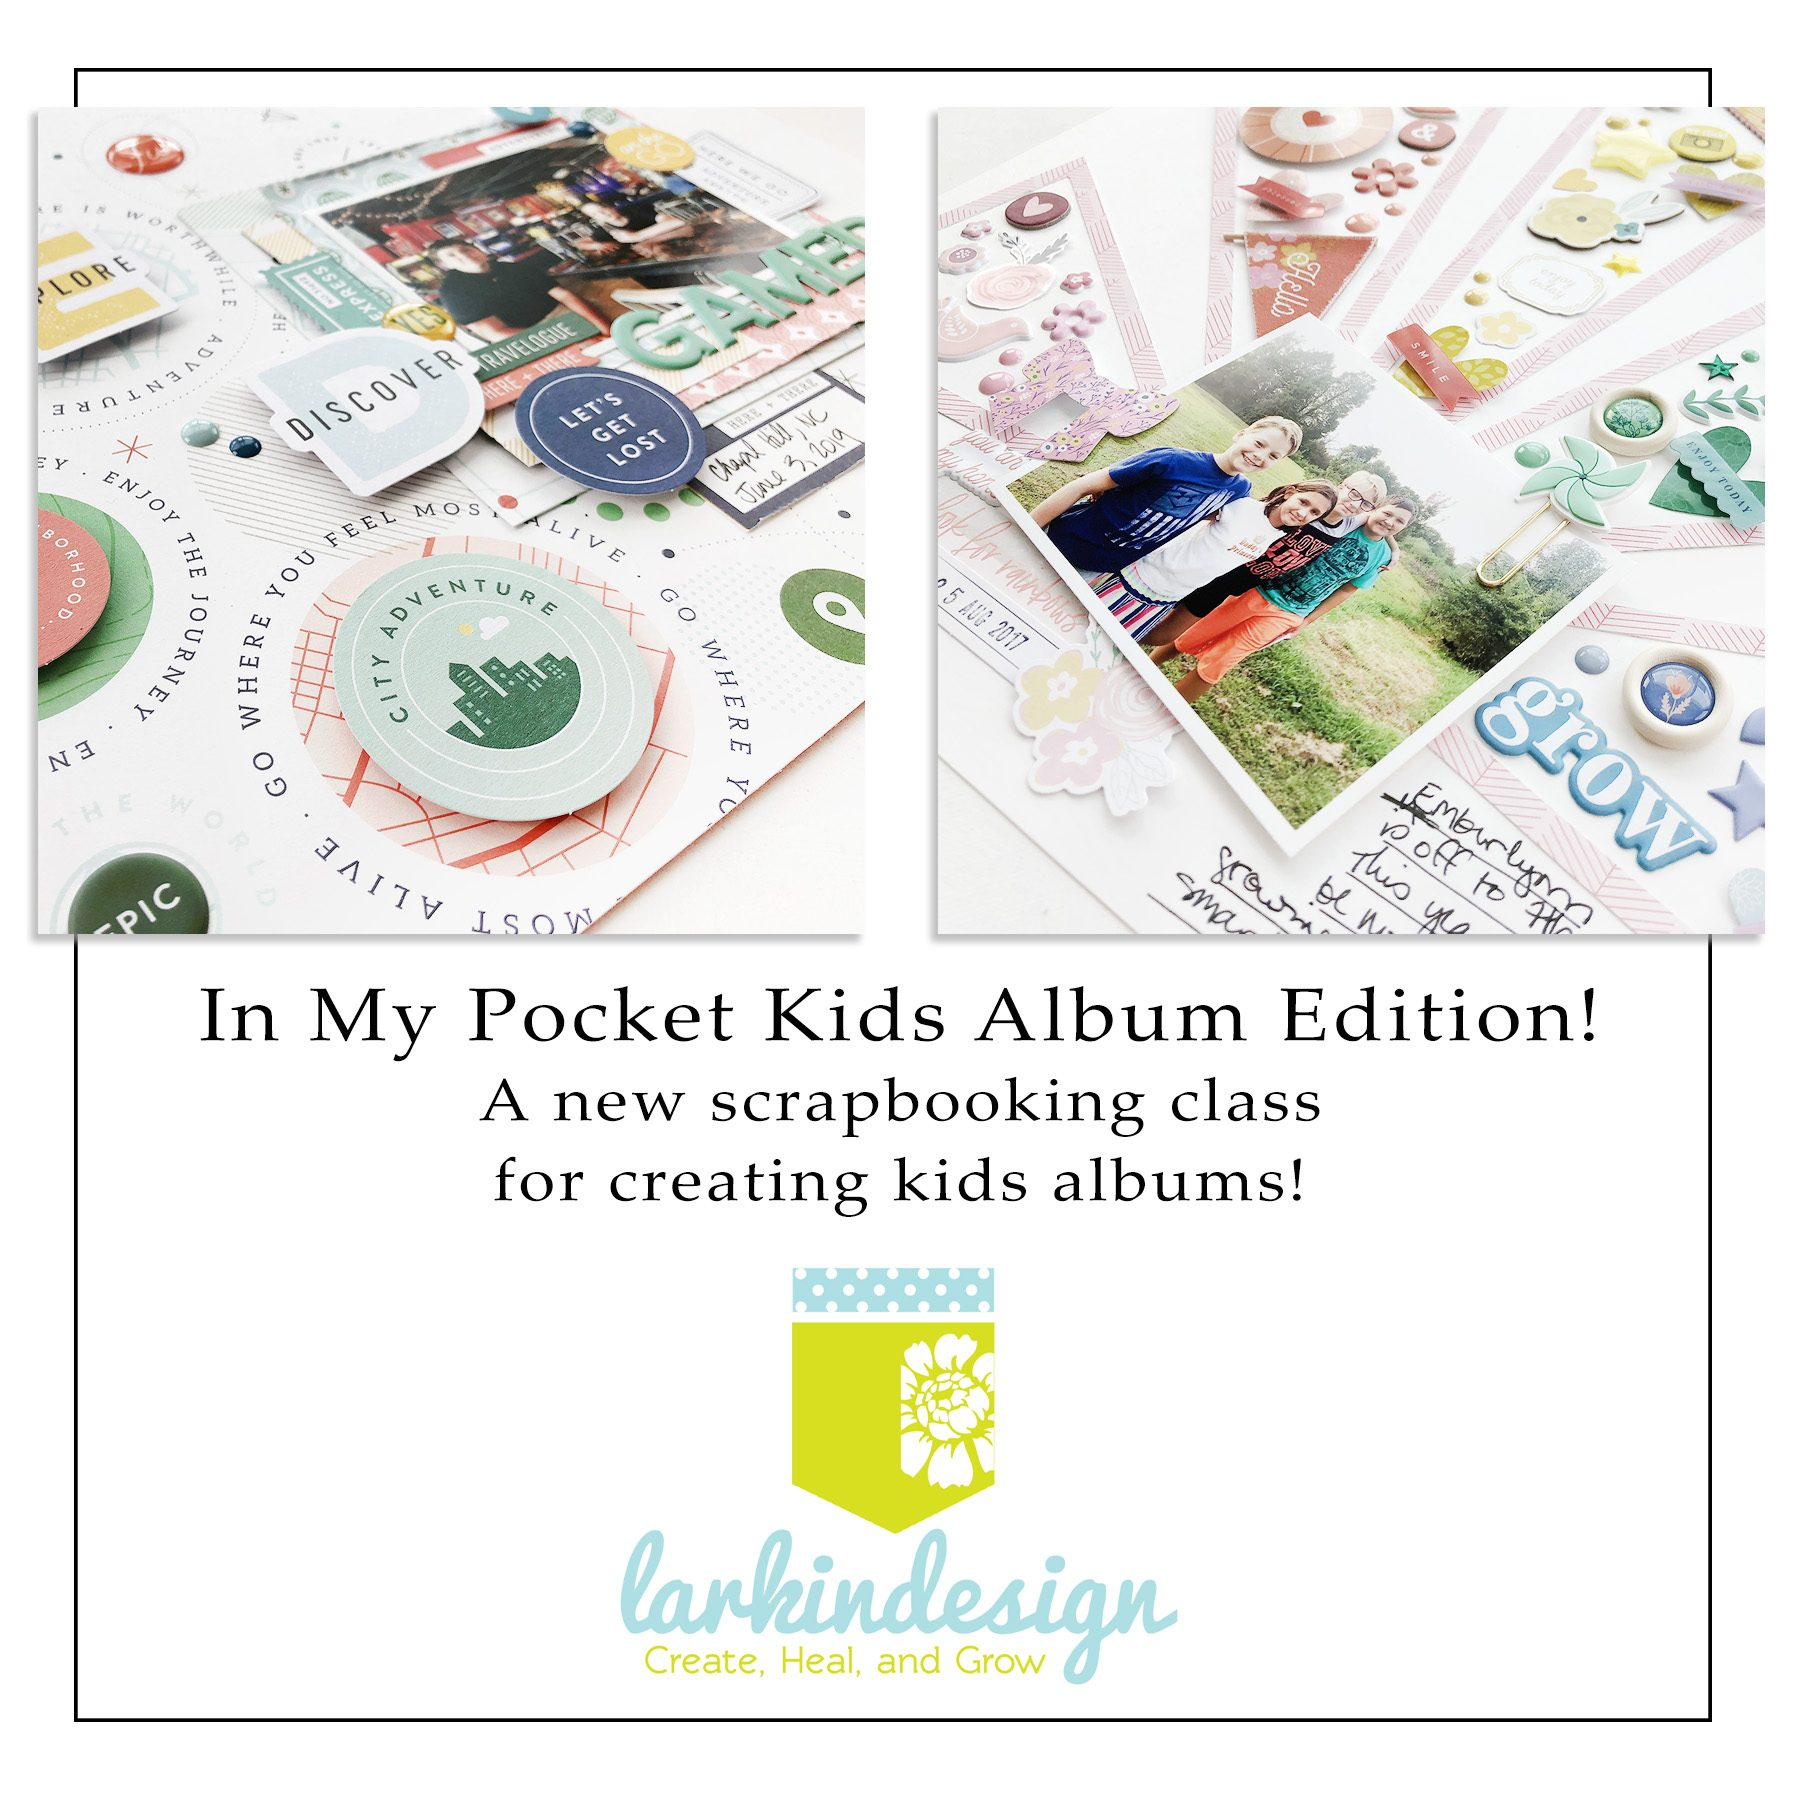 In My Pocket Kids Album Edition Memory Keeping Class